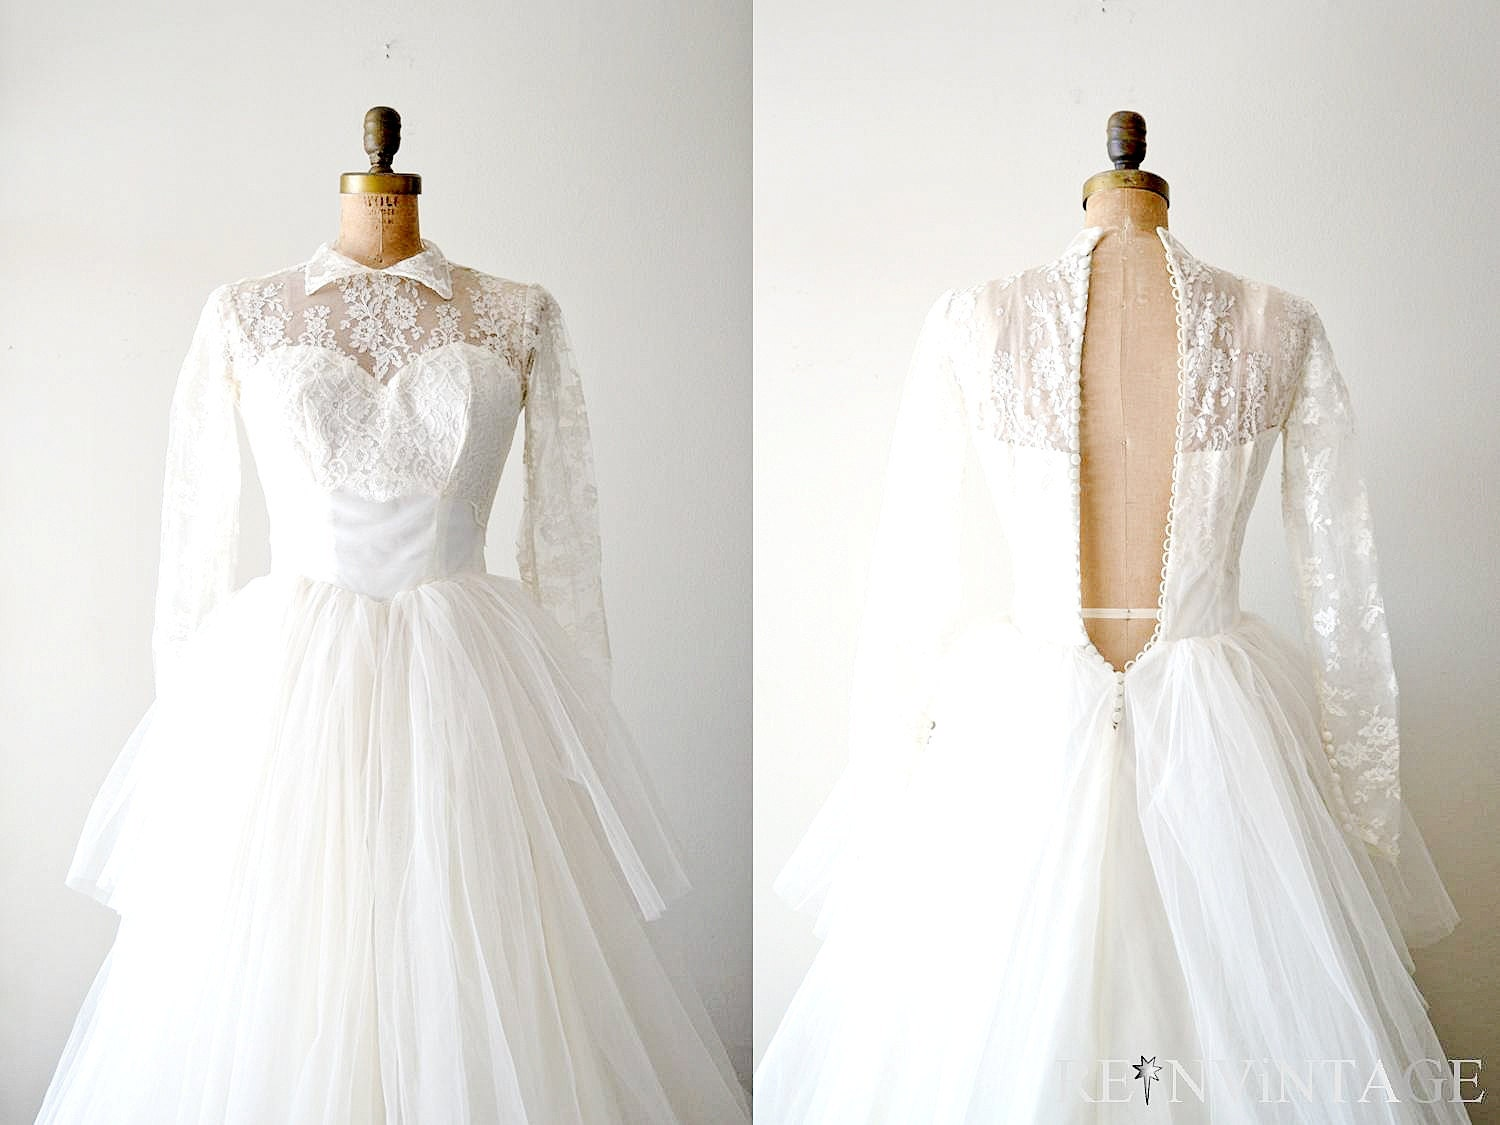 Vintage 1940s Wedding Dress 40s Lace Wedding Dress / Ivory